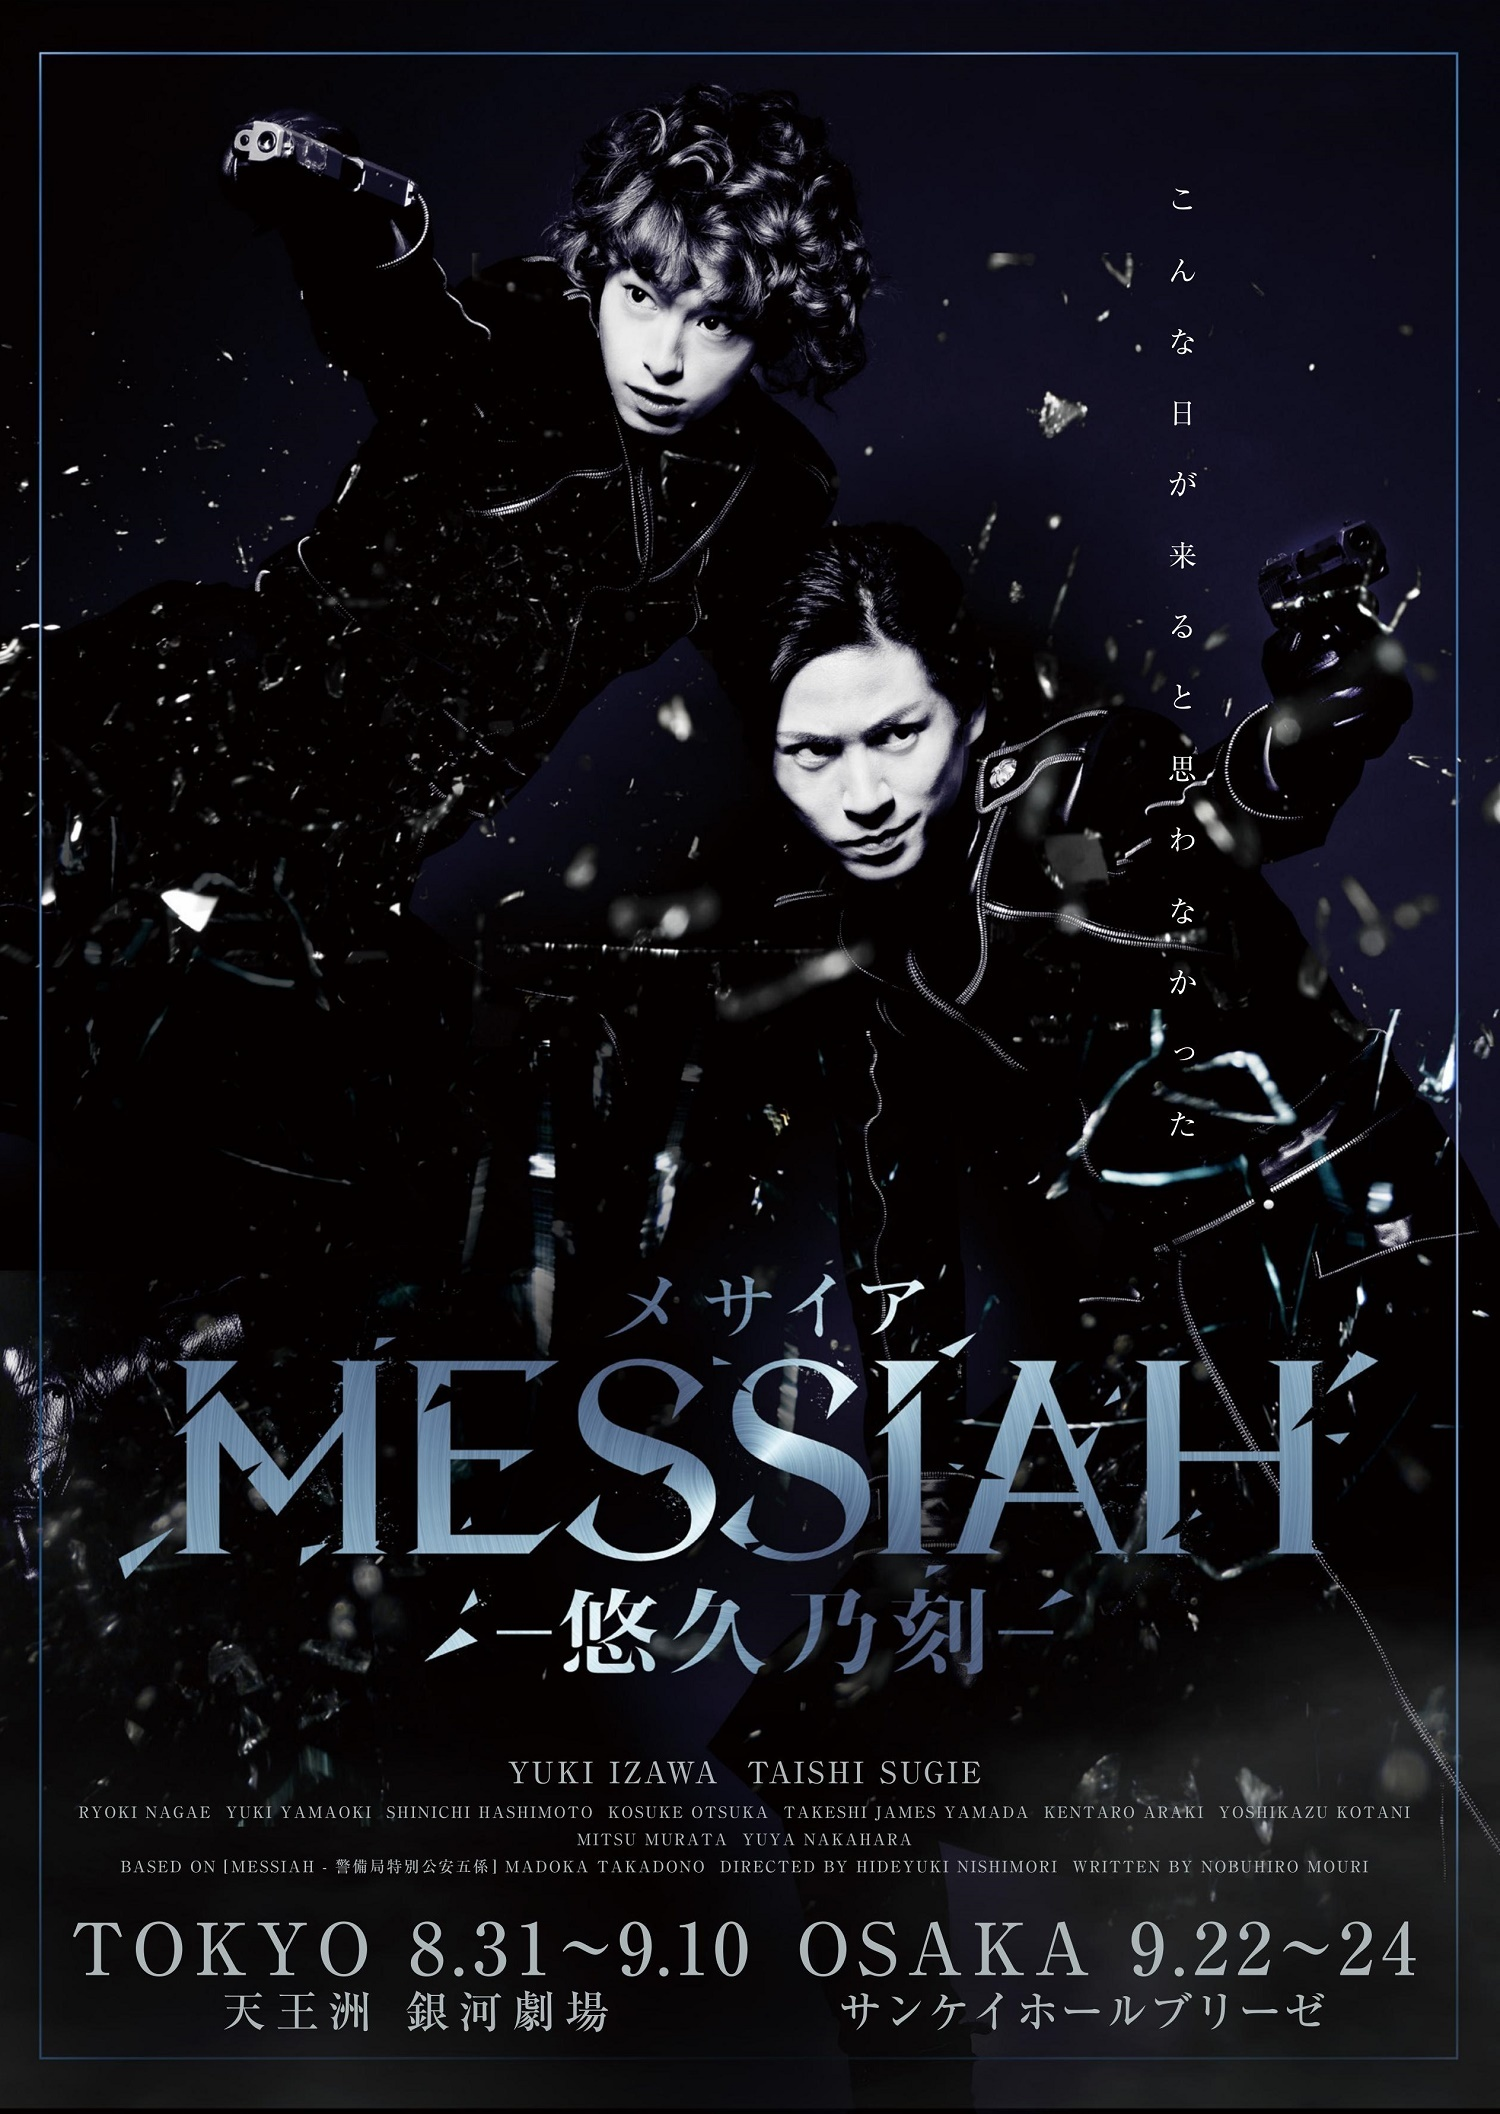 ⓒMESSIAH PROJECT ⓒ2017 舞台メサイア悠久乃刻製作委員会